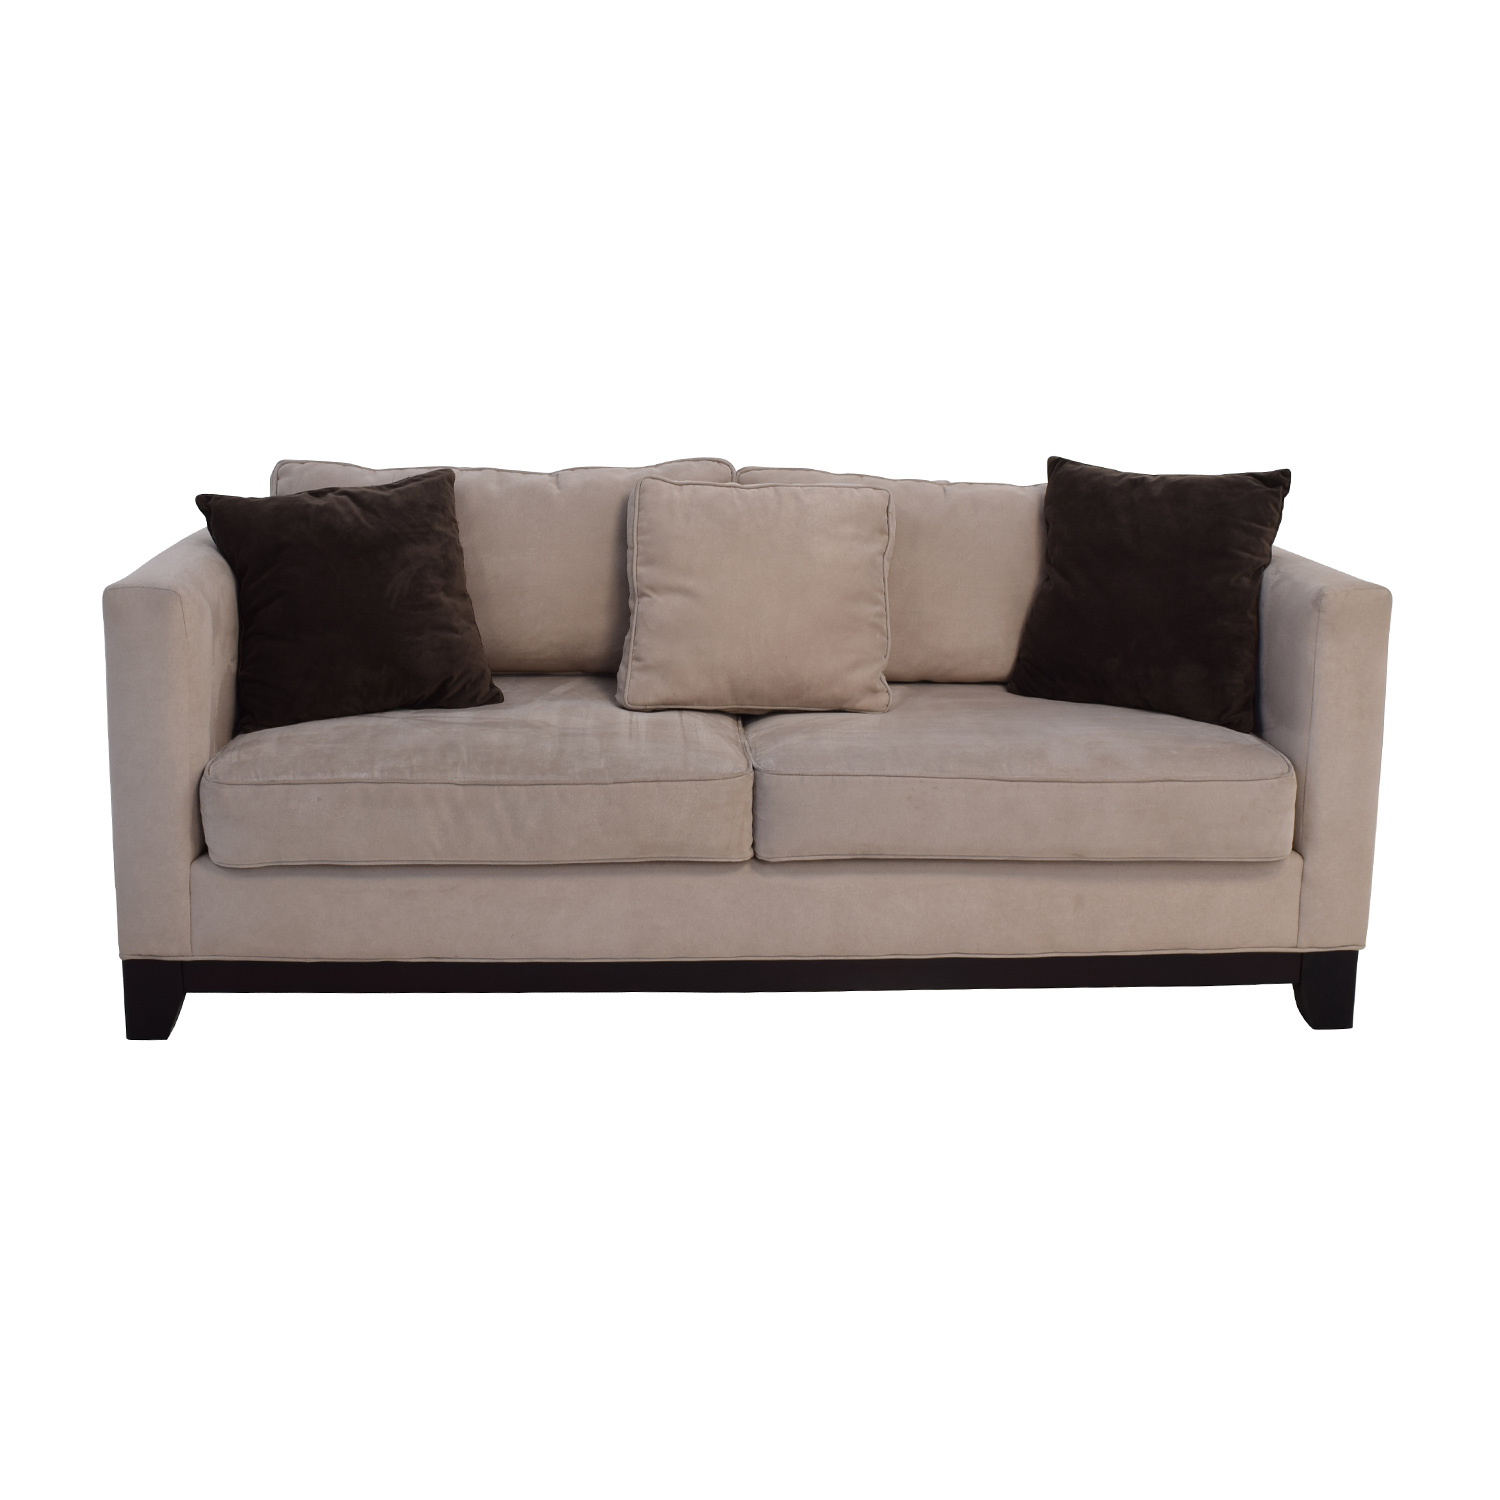 60 off bauhaus bauhaus beige microsuede couch with toss for Bauhaus sofa bed